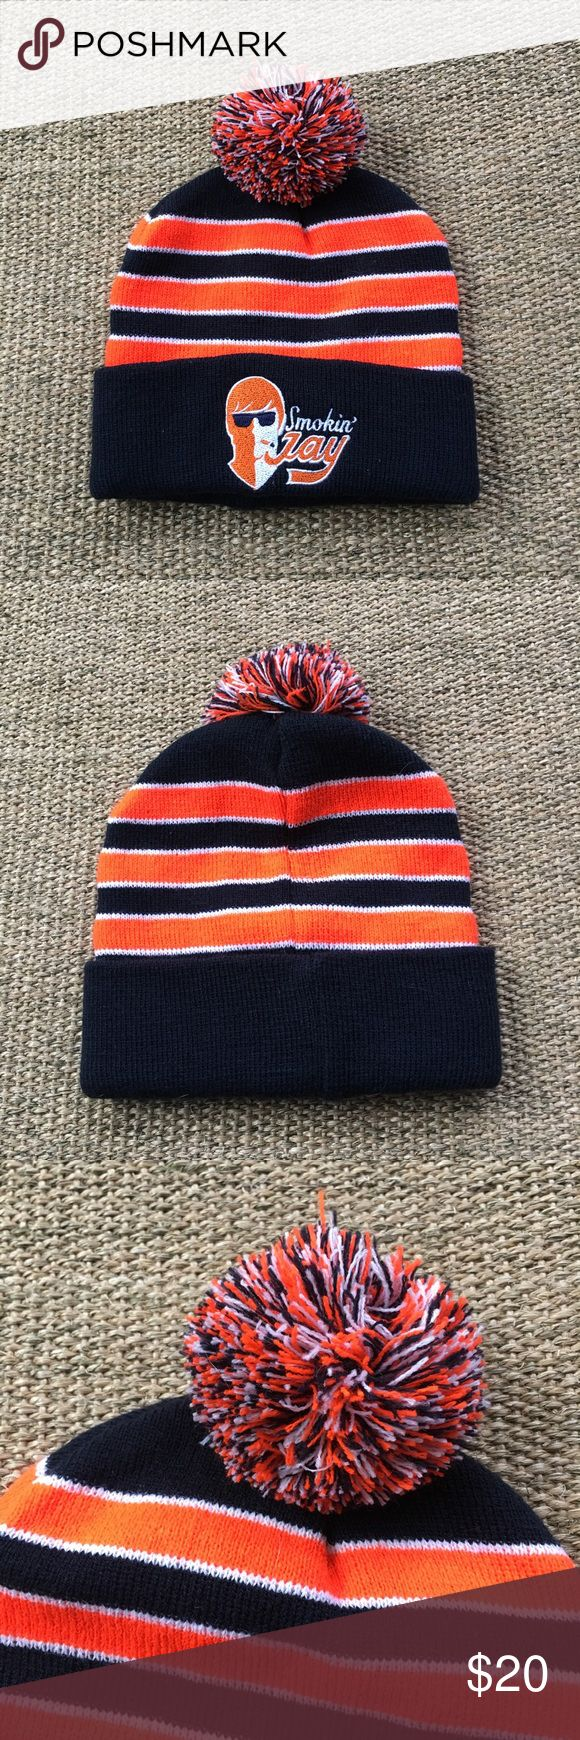 🆕 Chicago Bears Smokin' Jay Cutler Beanie Hat Brand new. 🐾 Comes from a smoke-free, but not pet-free home. 🚫 No trades. No holds. 📦 Fast shipping! 🙋🏻 Considering all reasonable offers! Accessories Hats